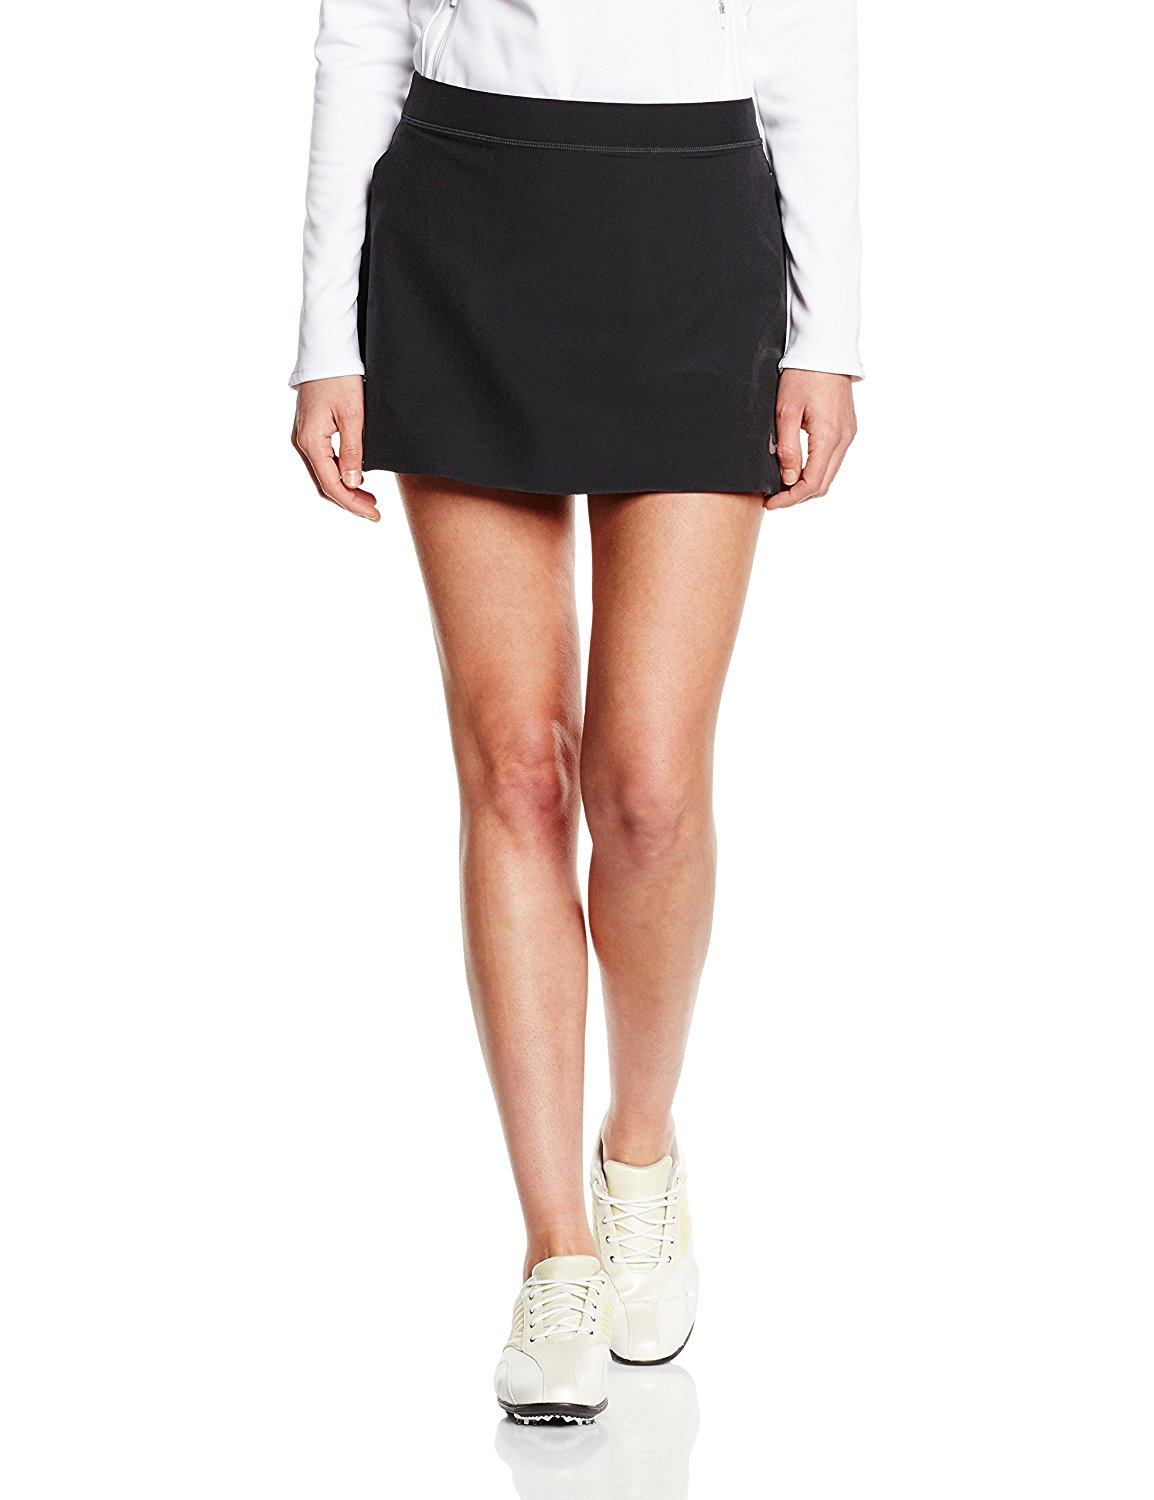 sneakers for cheap 11598 60857 Get Quotations · Nike Womens Golf Innovation Links Woven Skort Black Small